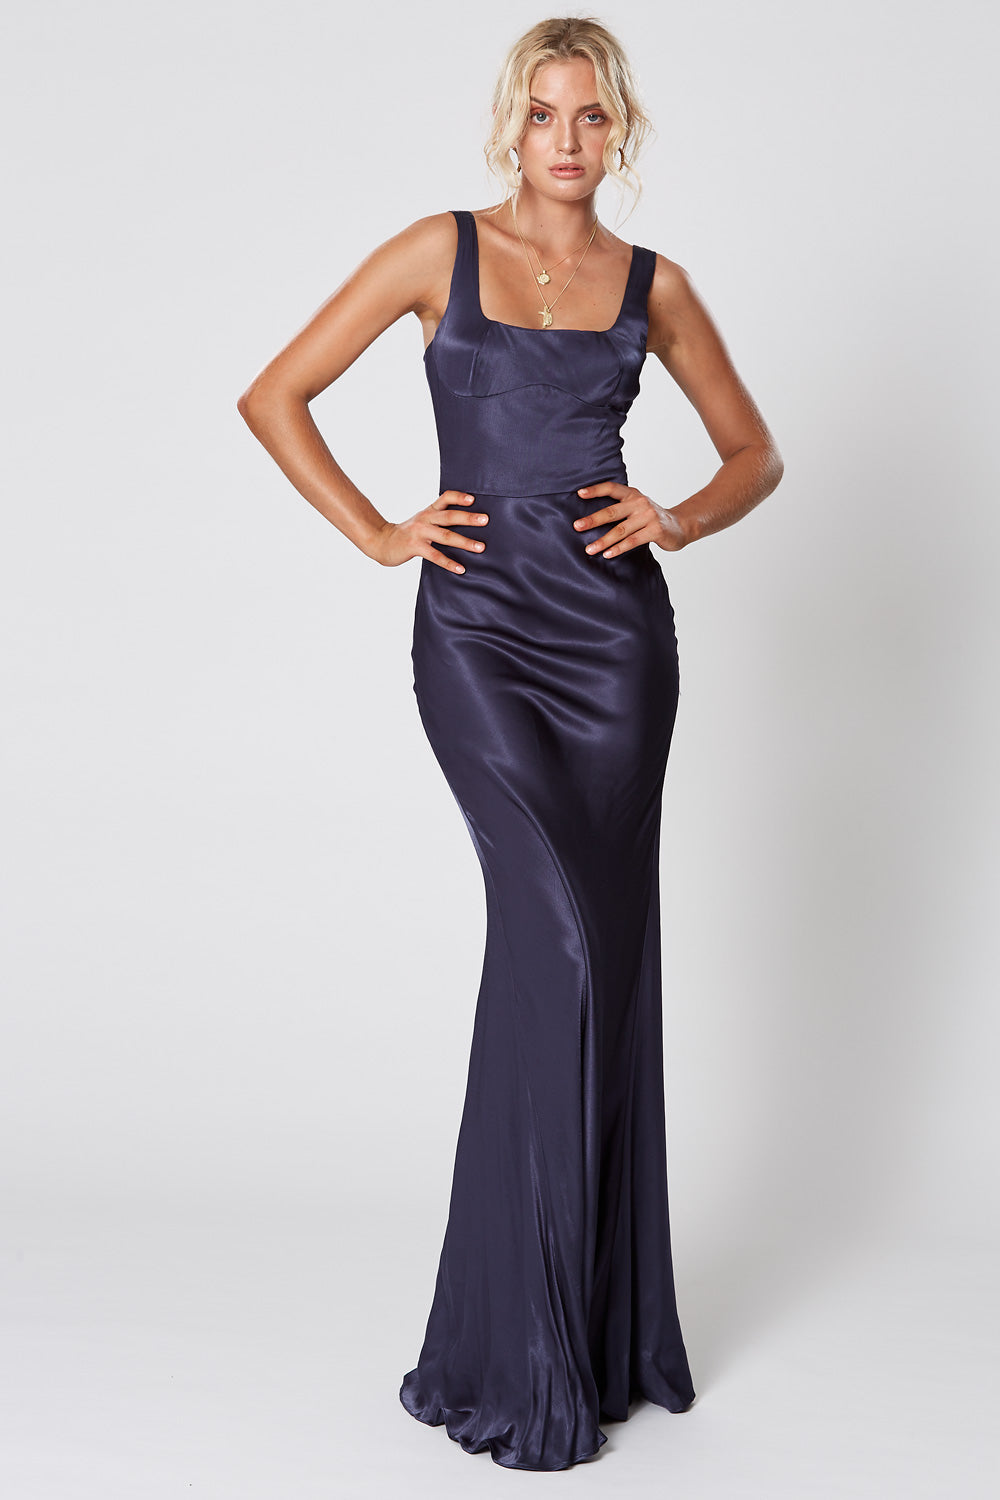 LADY OF THE NIGHT DRESS NAVY